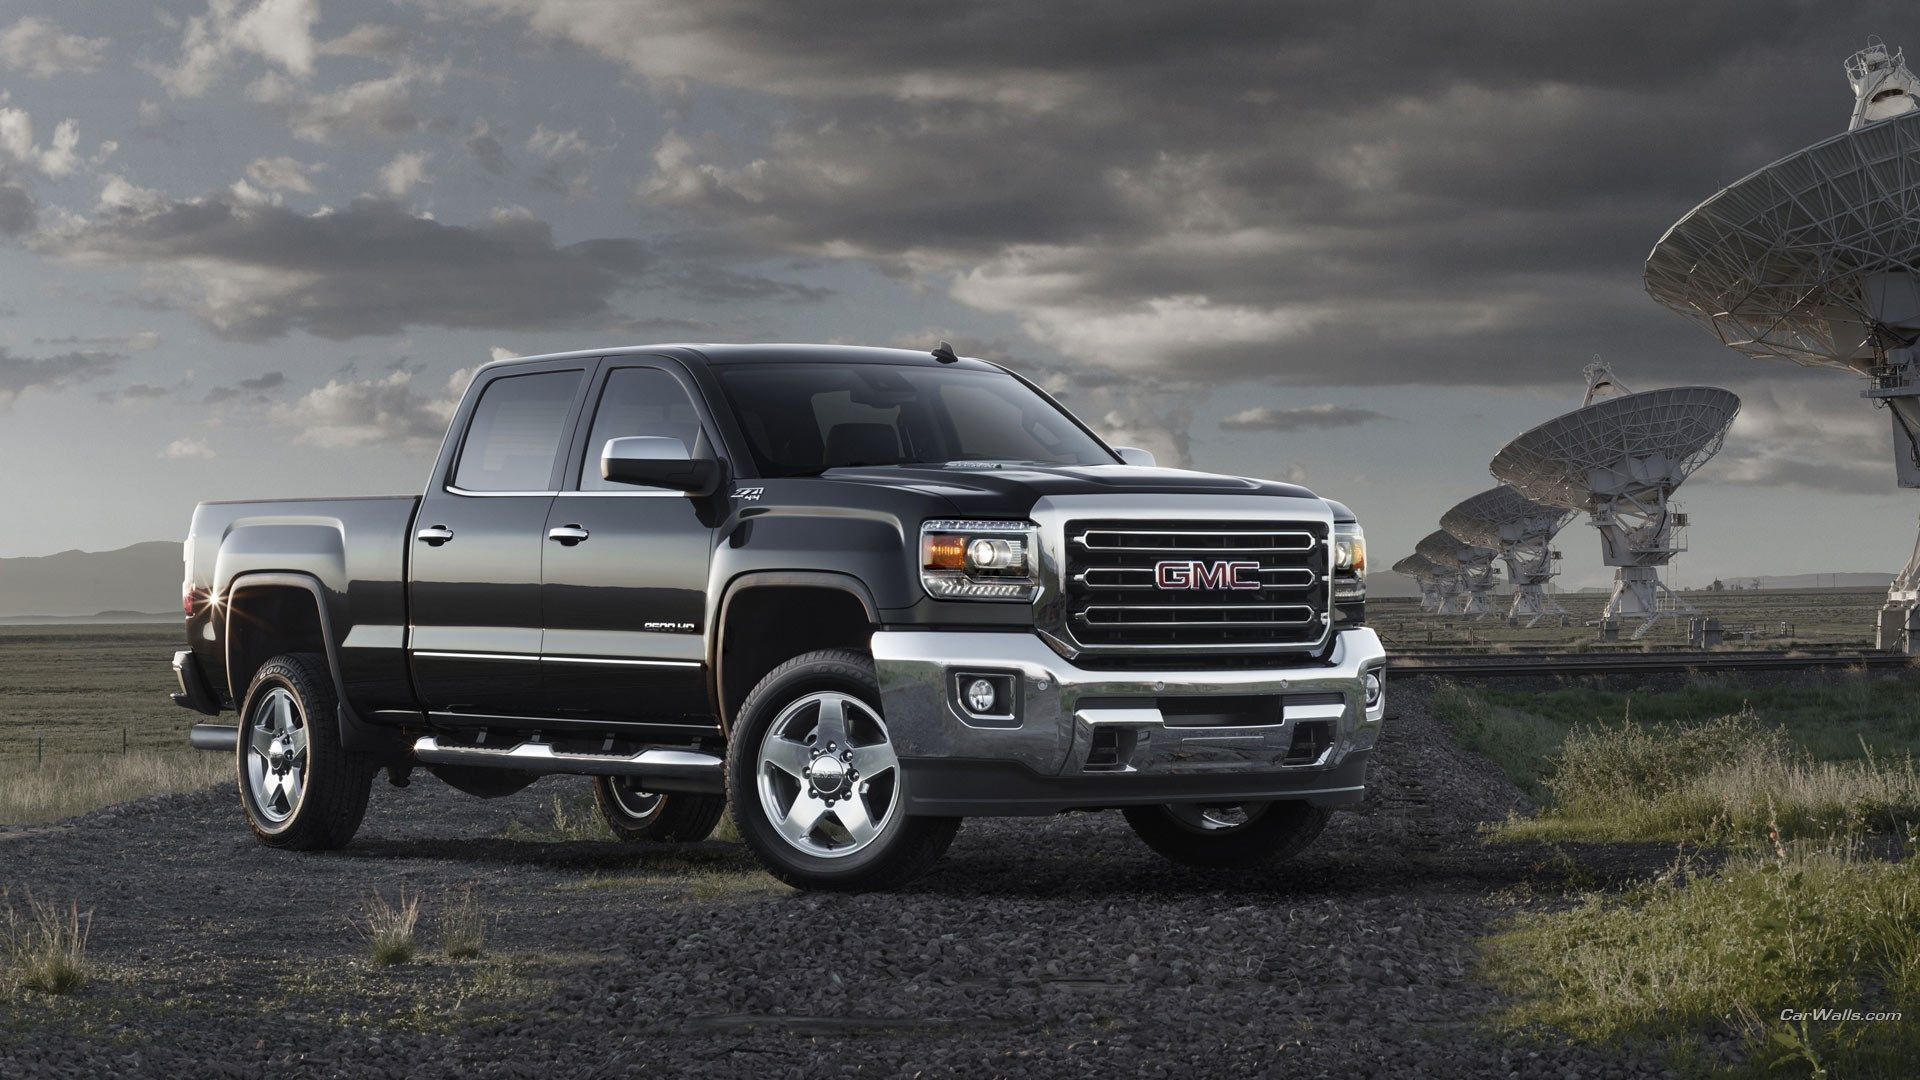 1920x1080 Free Wallpaper And Screensavers For 2015 Gmc Sierra Hd Gmc Sierra 2500hd Gmc Sierra Gmc Truck